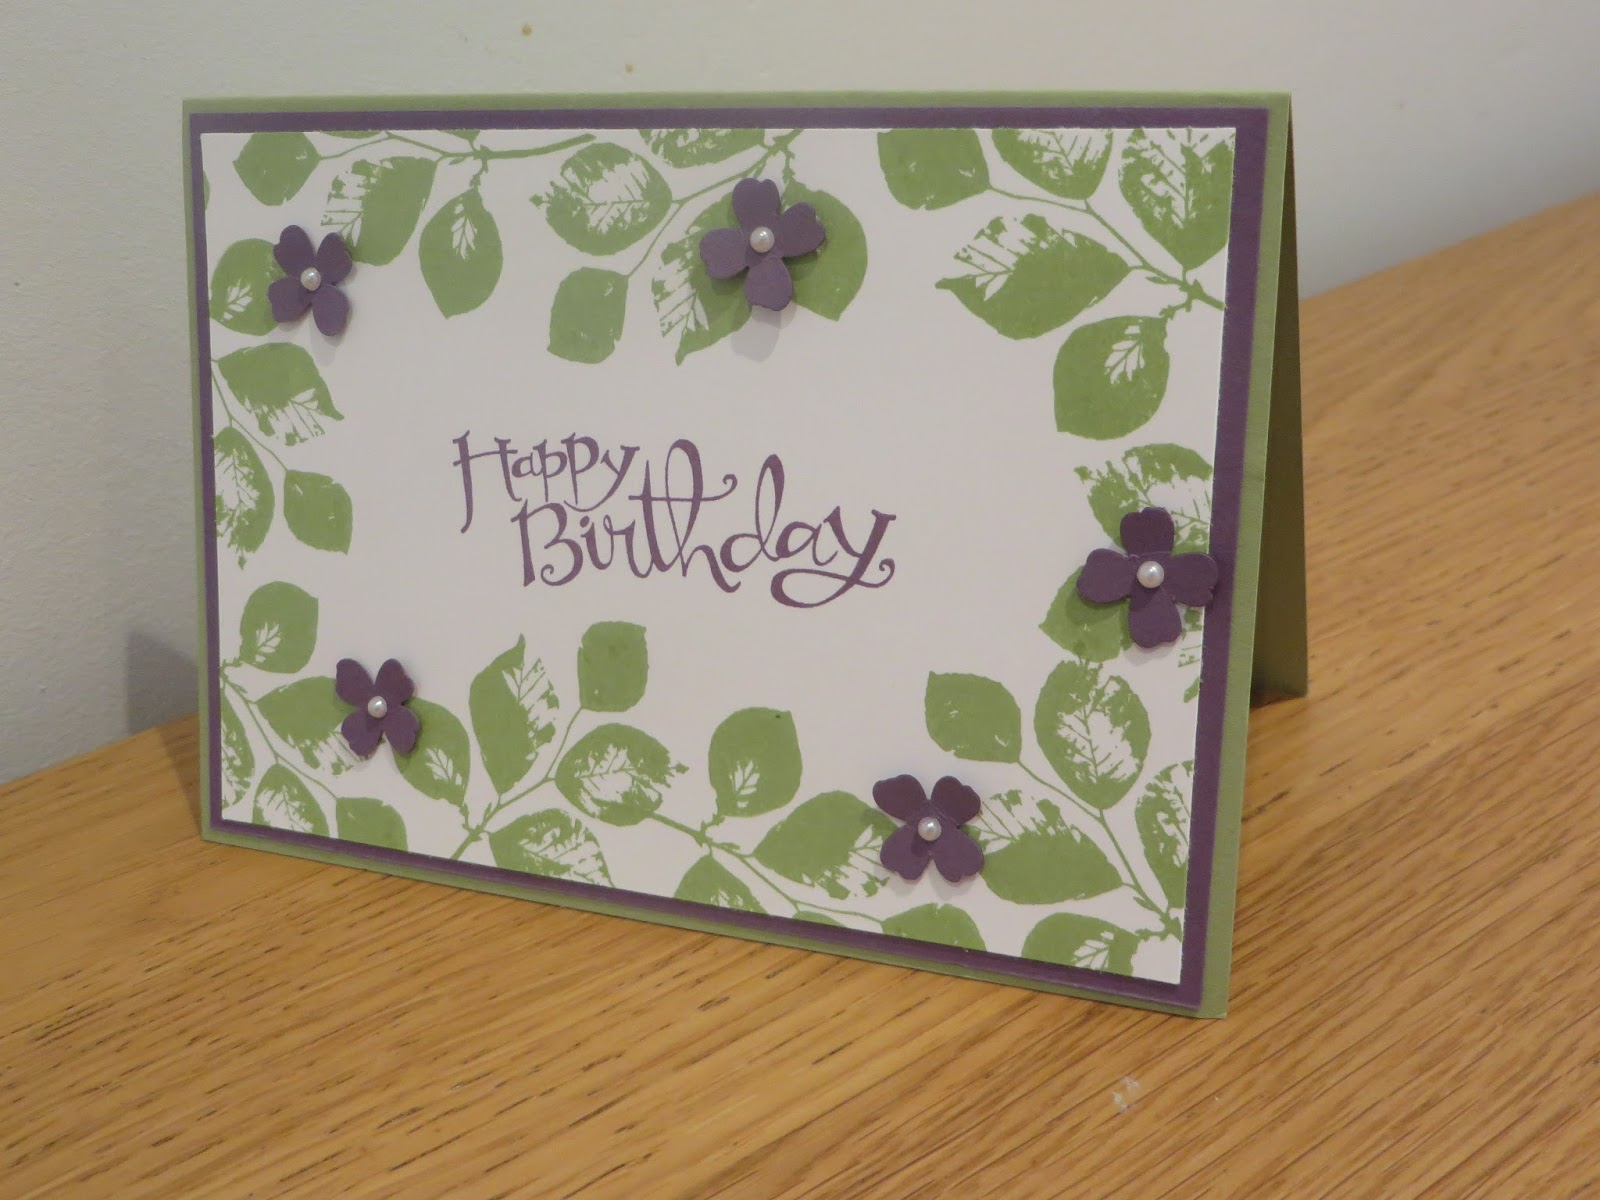 Stampin up birthday card ideas gangcraft craftycarolinecreates leafy kinda eclectic birthday card idea birthday card bookmarktalkfo